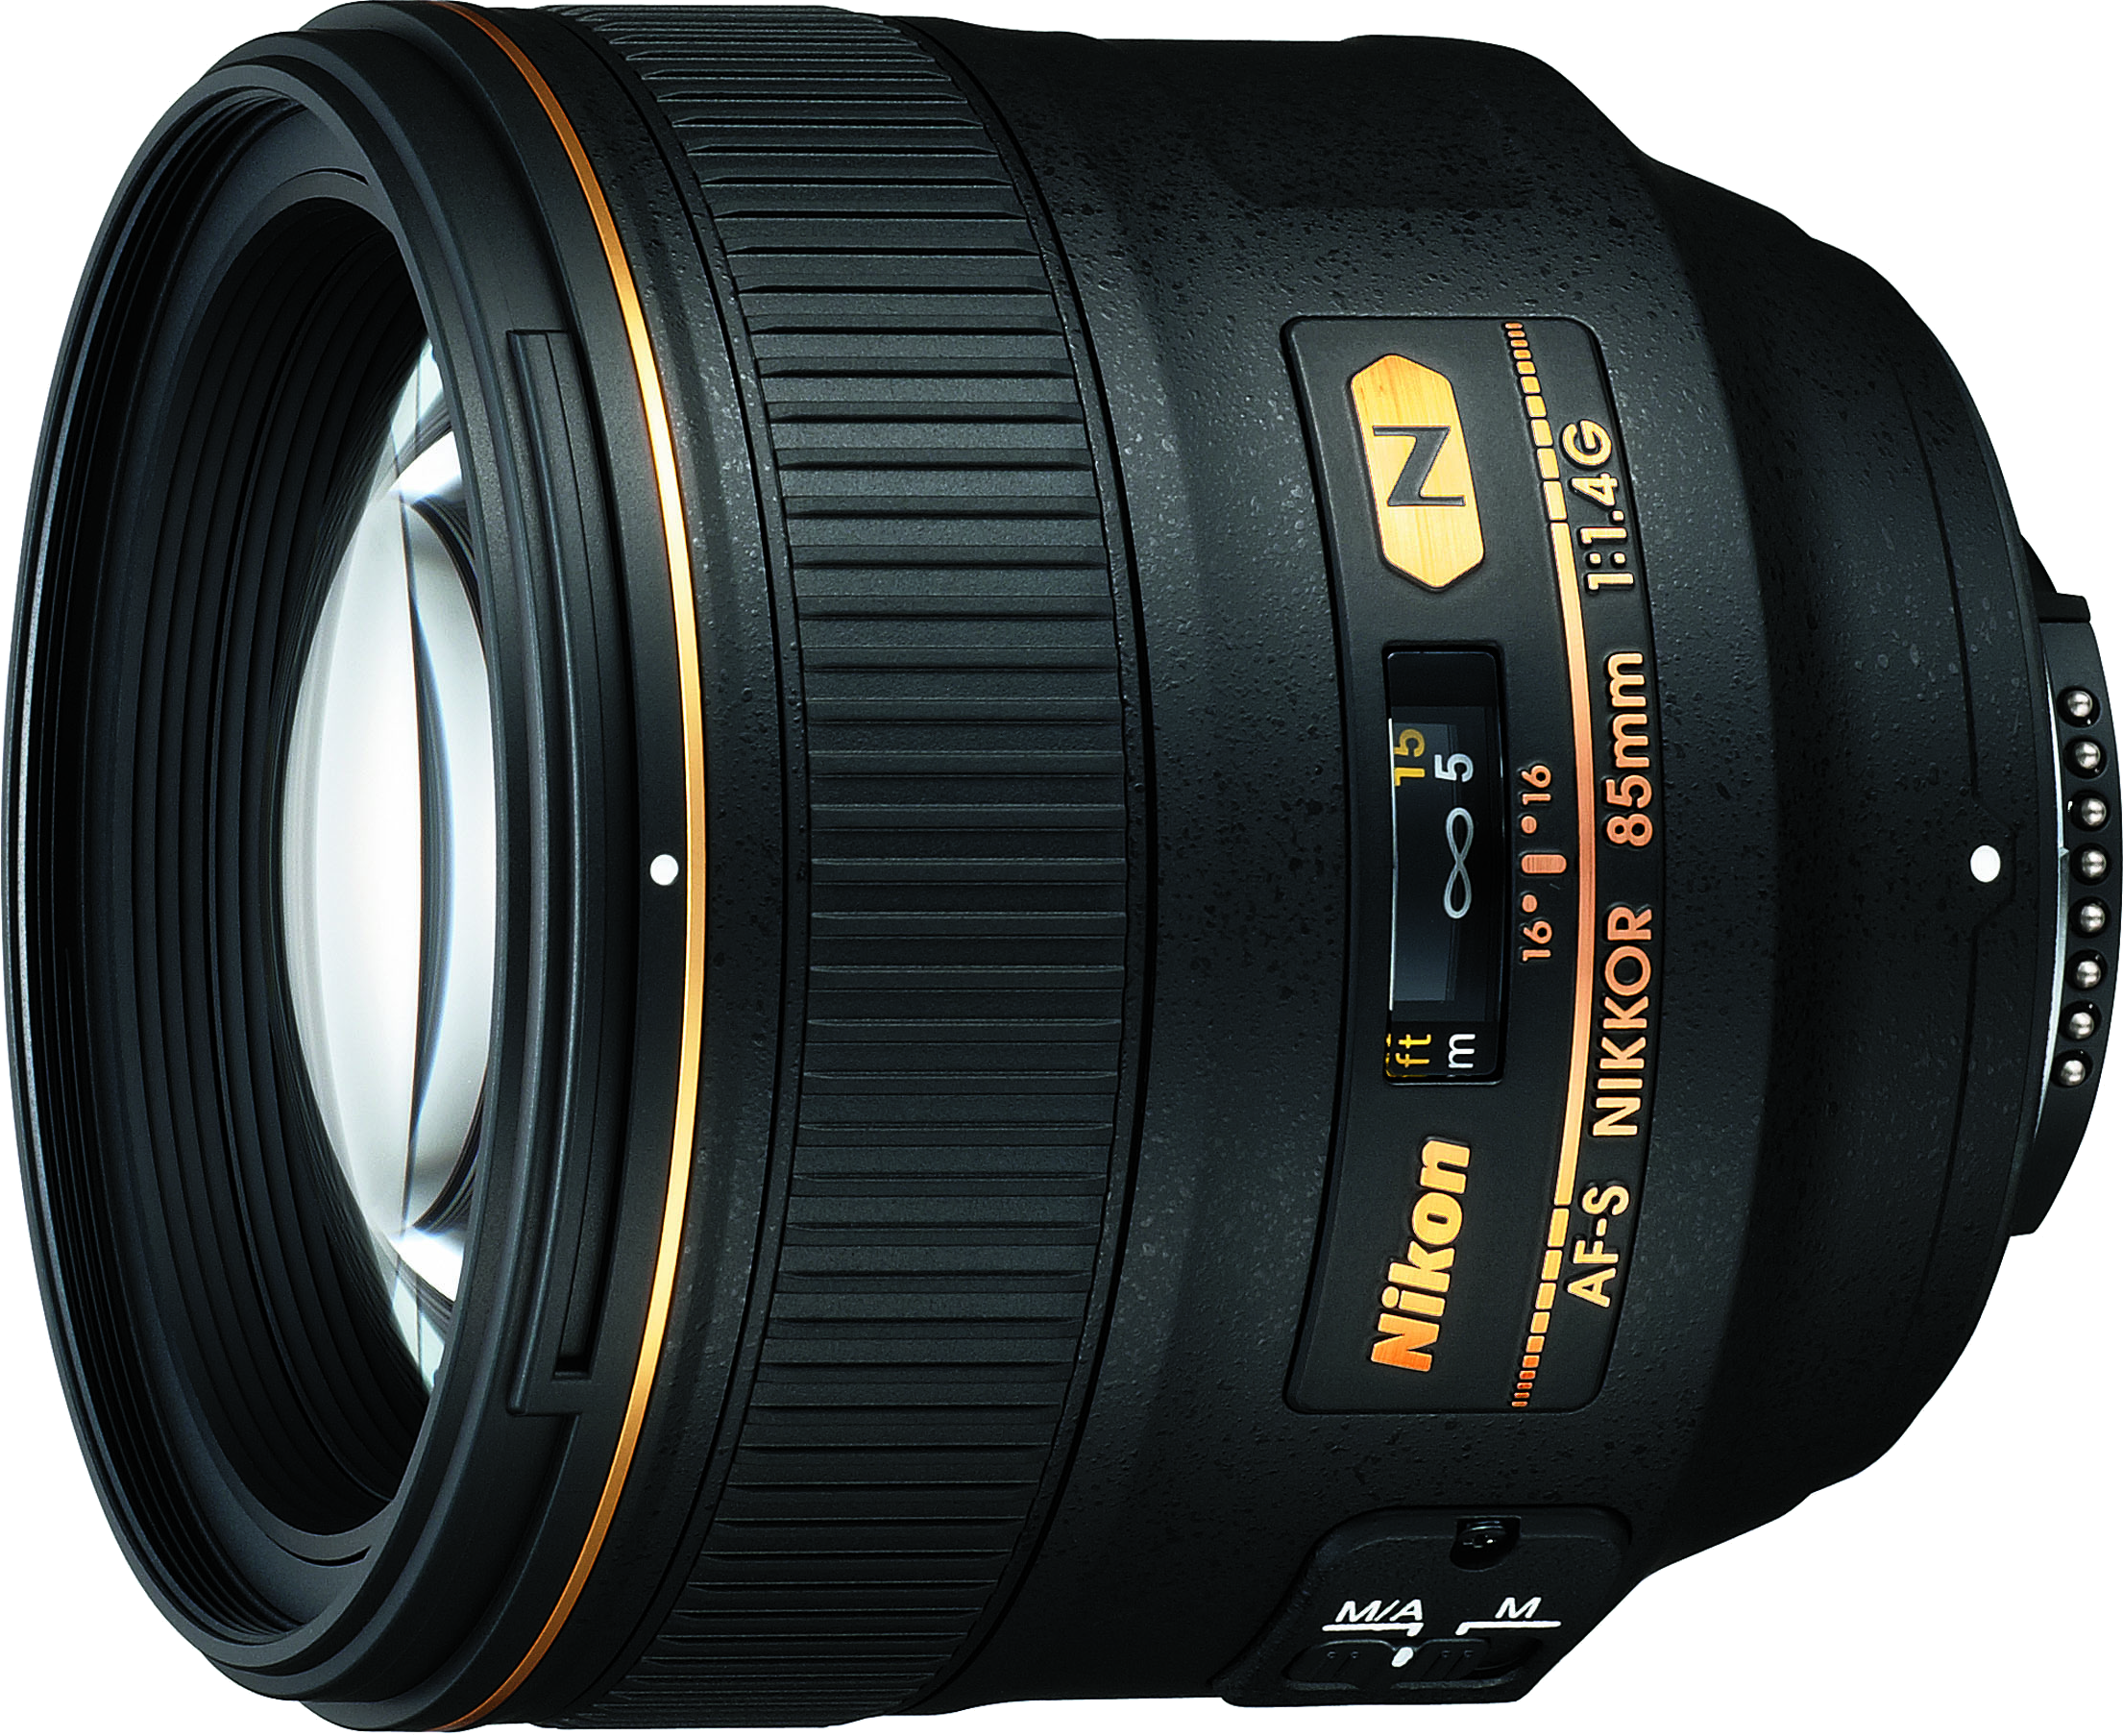 Nikon's newer 85mm f/1.4 model.  Features an AF-S focus mechanism and upgraded optics.